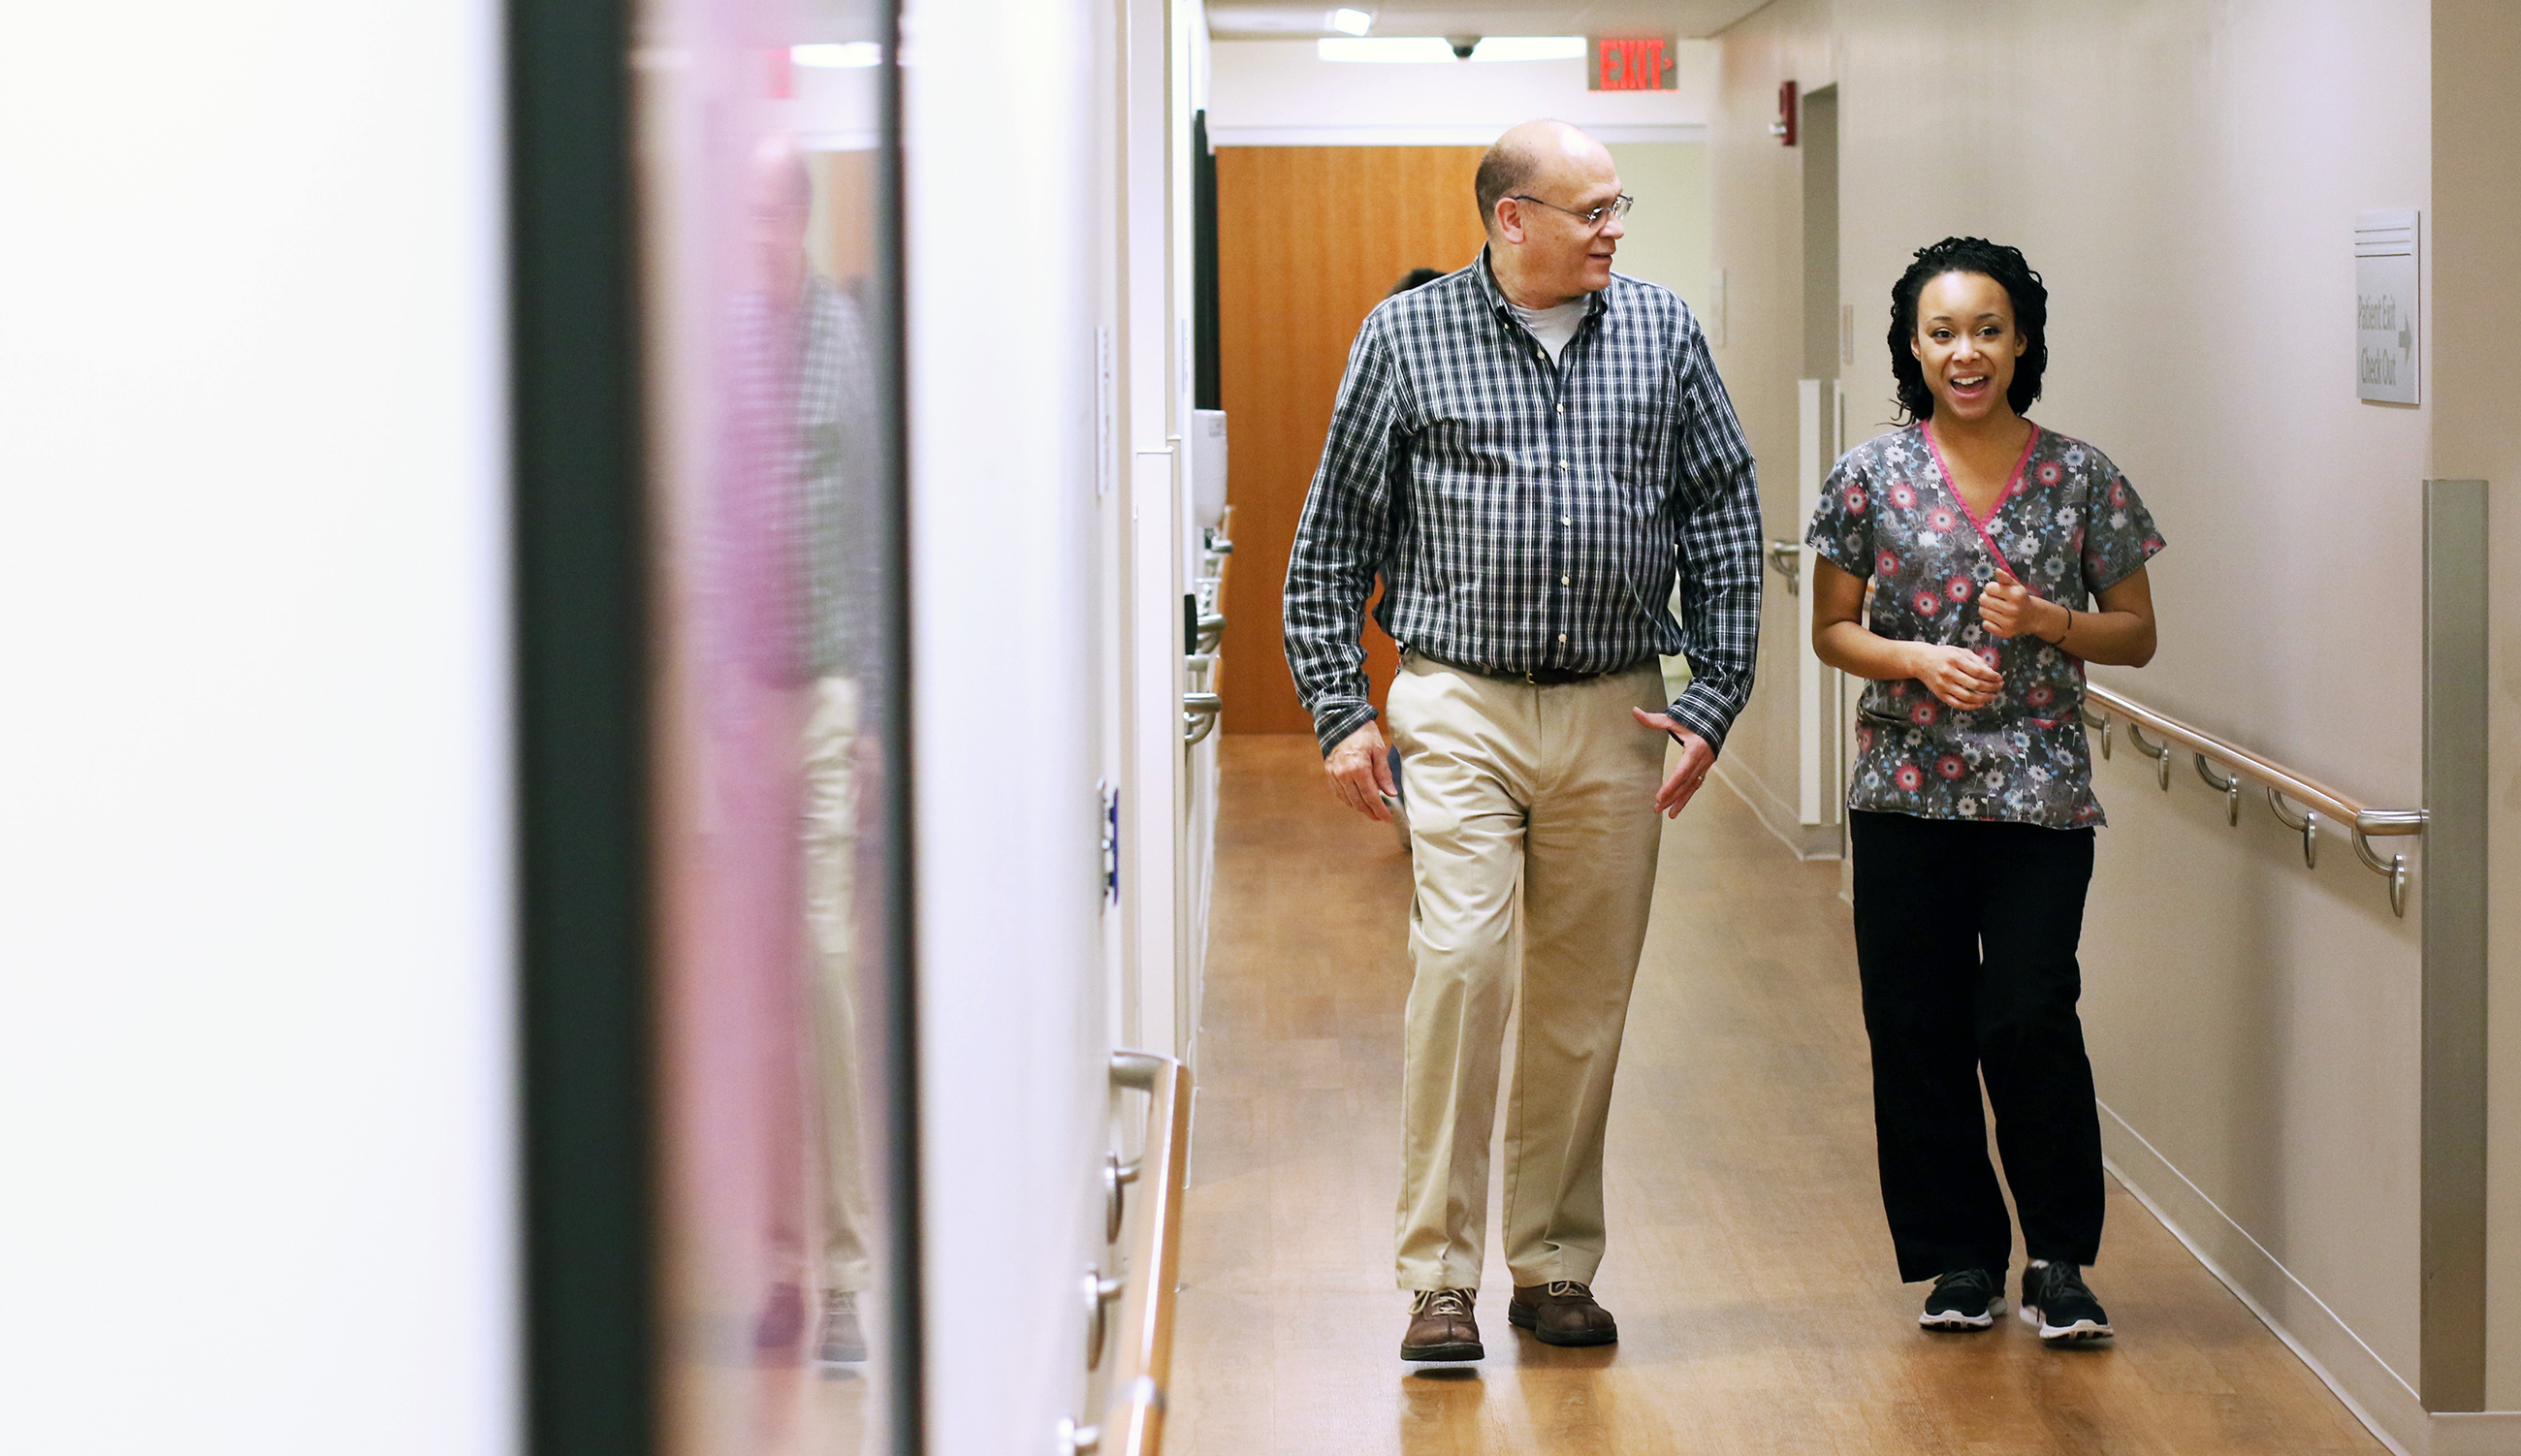 Patient and nurse walk in hallway